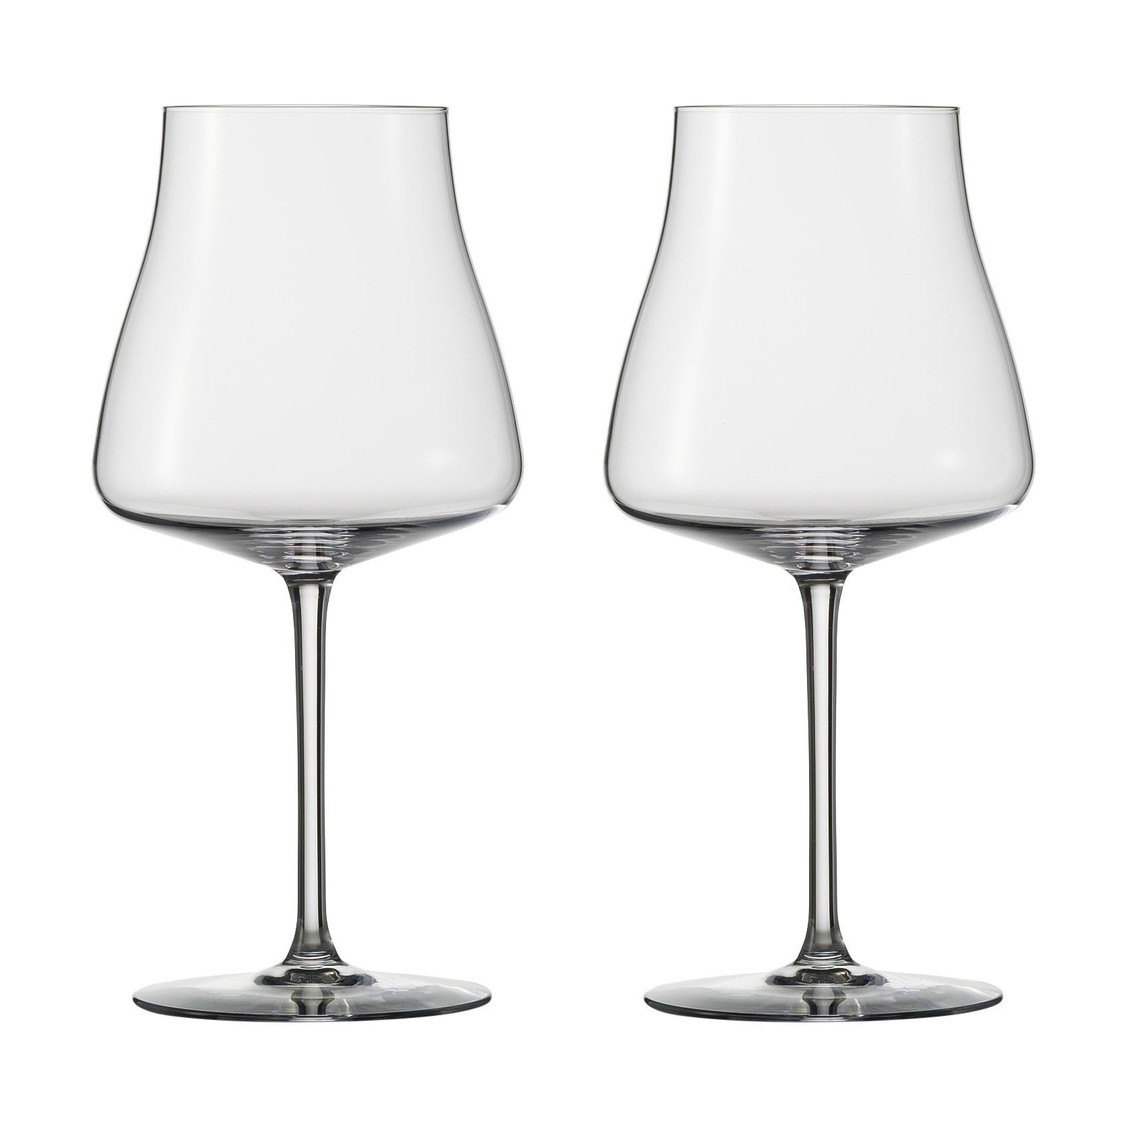 Chardonnay Wine Glass Zwiesel 1872 Wine Classics Chardonnay Wine Glass Set Of 2